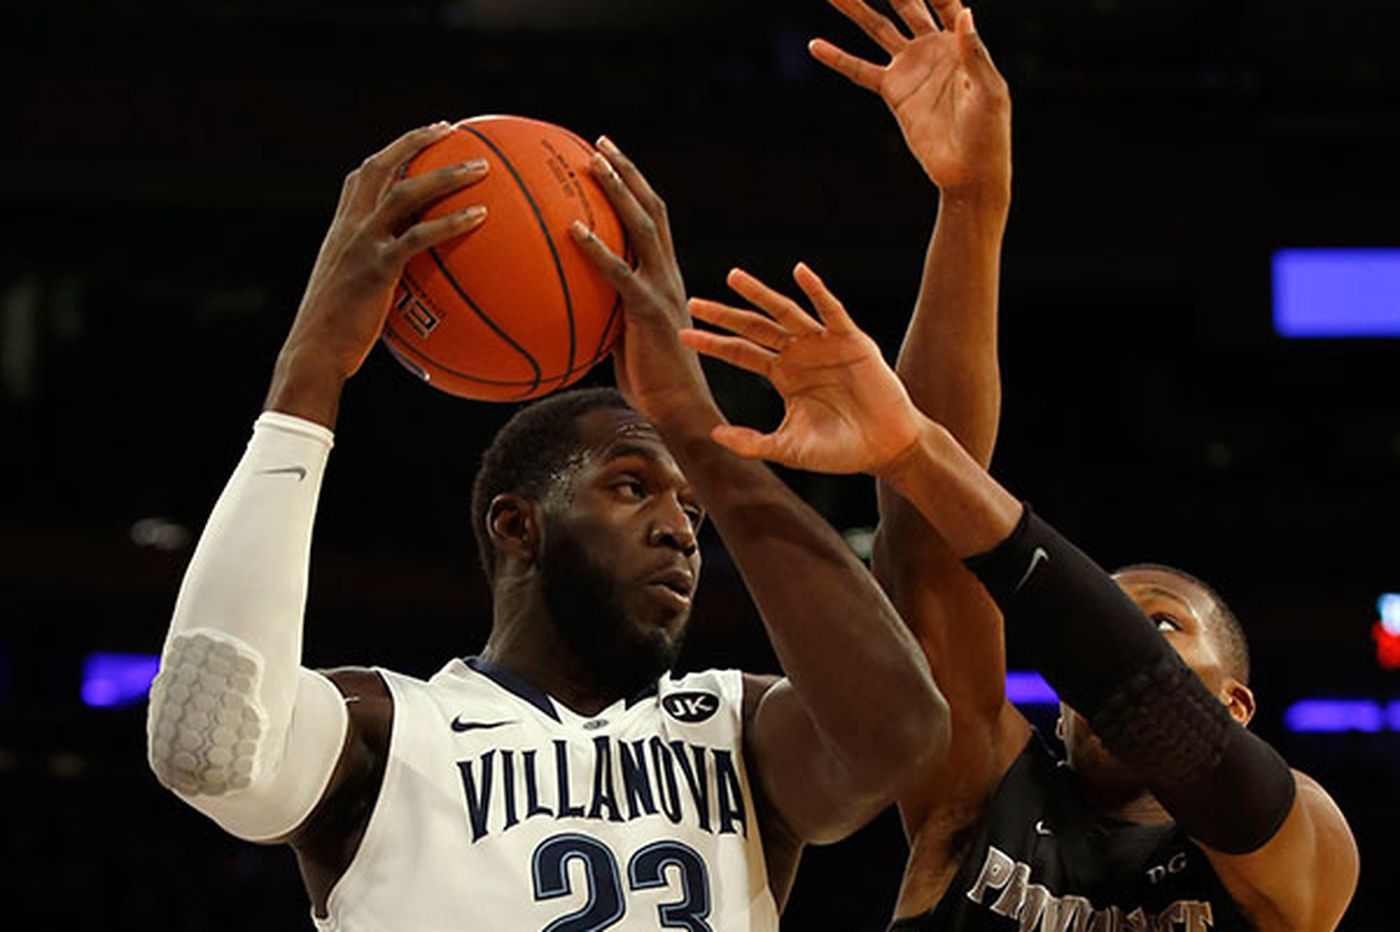 When Villanova goes on a run, watch out